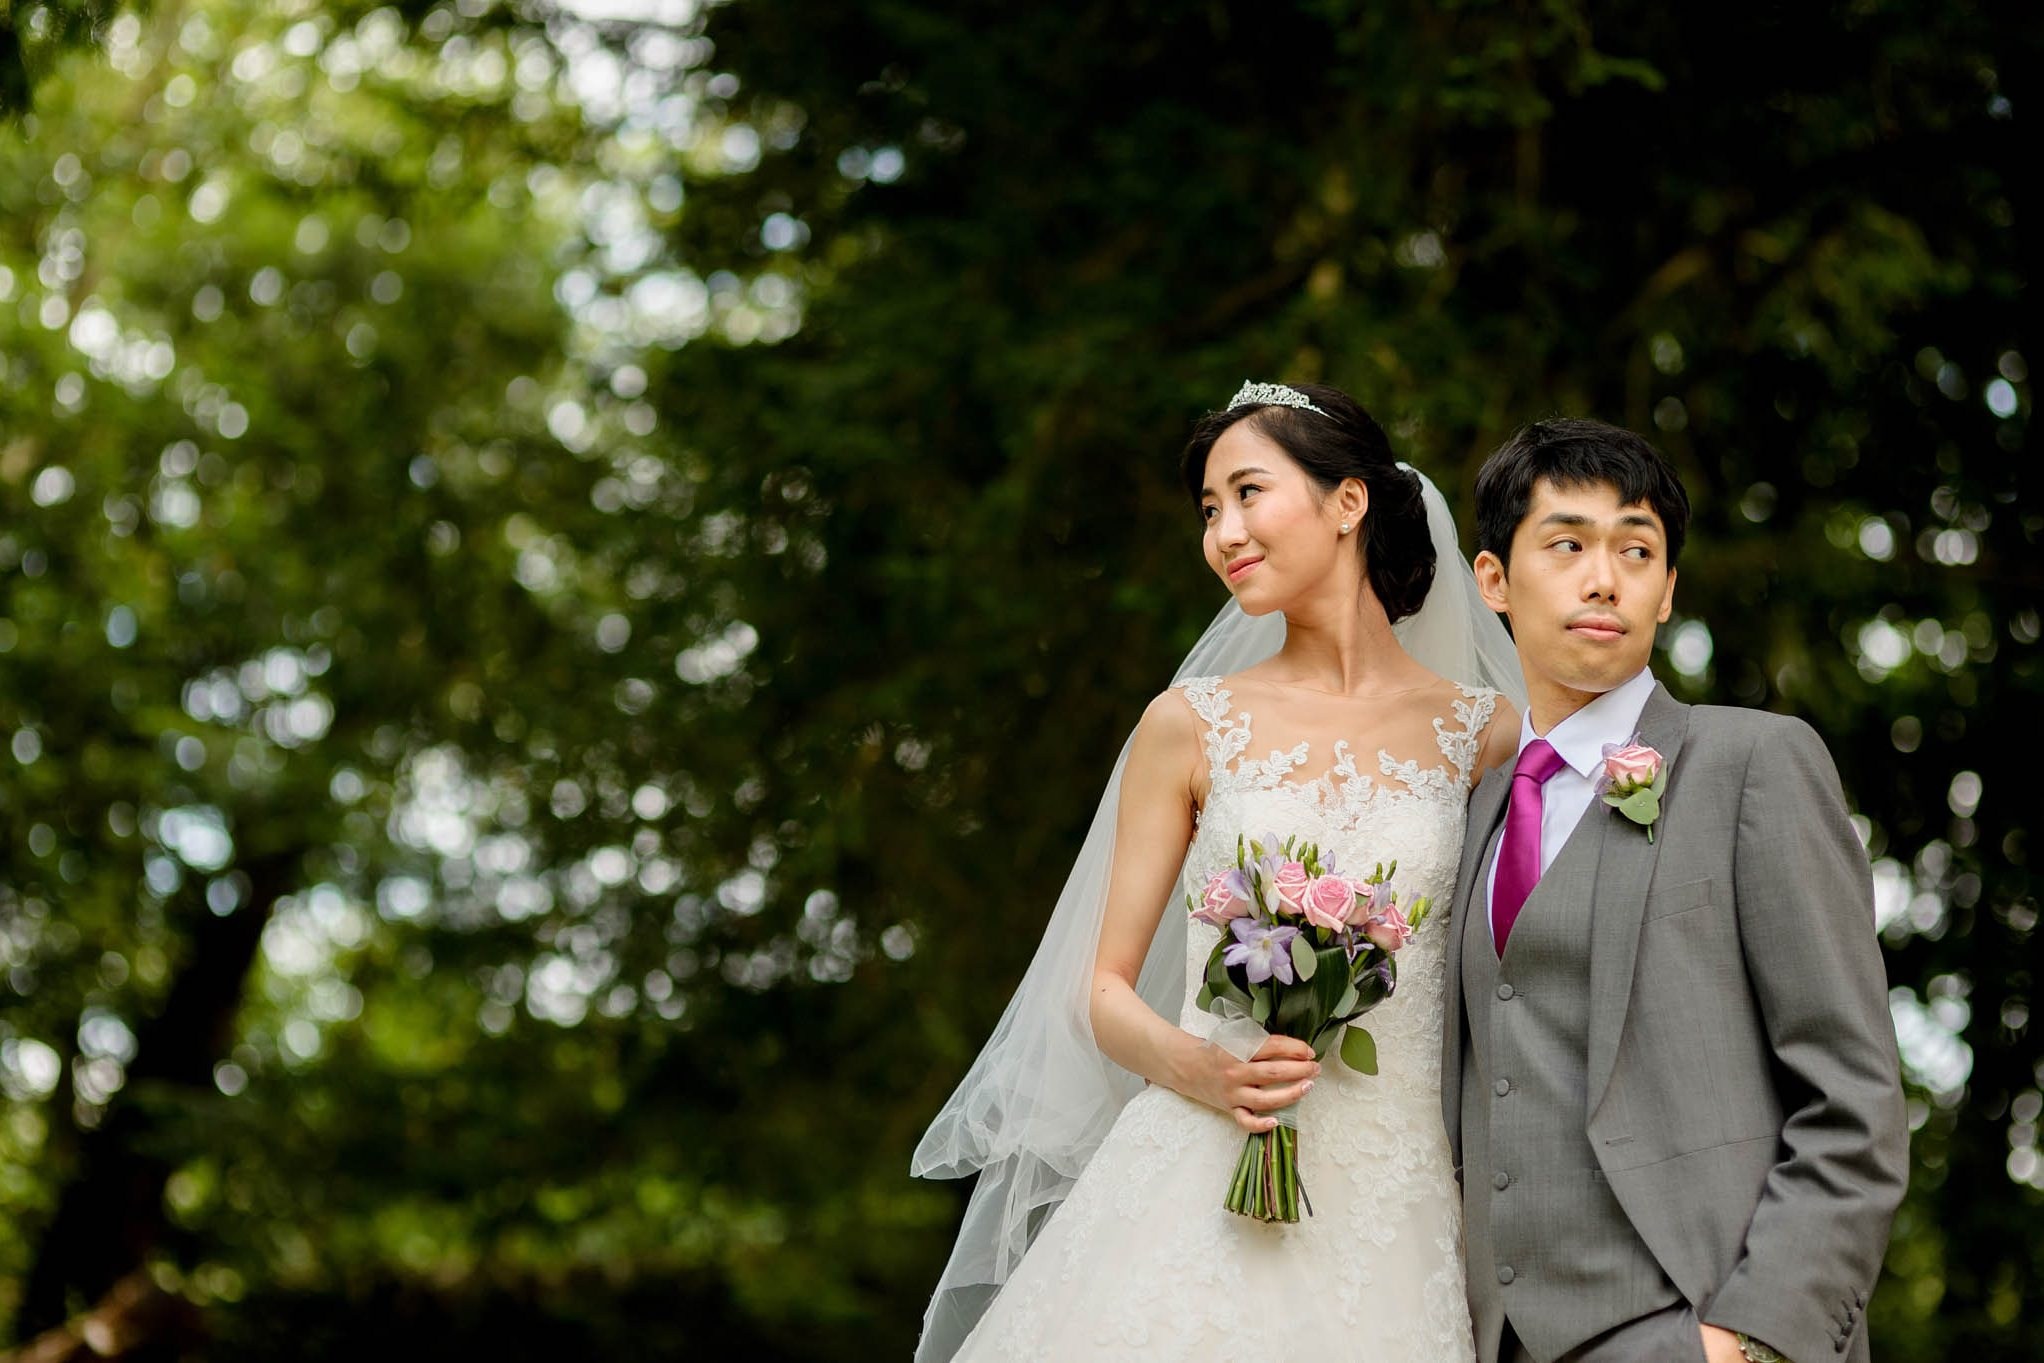 Chinese wedding at Eastnor Castle in Herefordshire, West Midlands - Yilin & Tongbiao 15